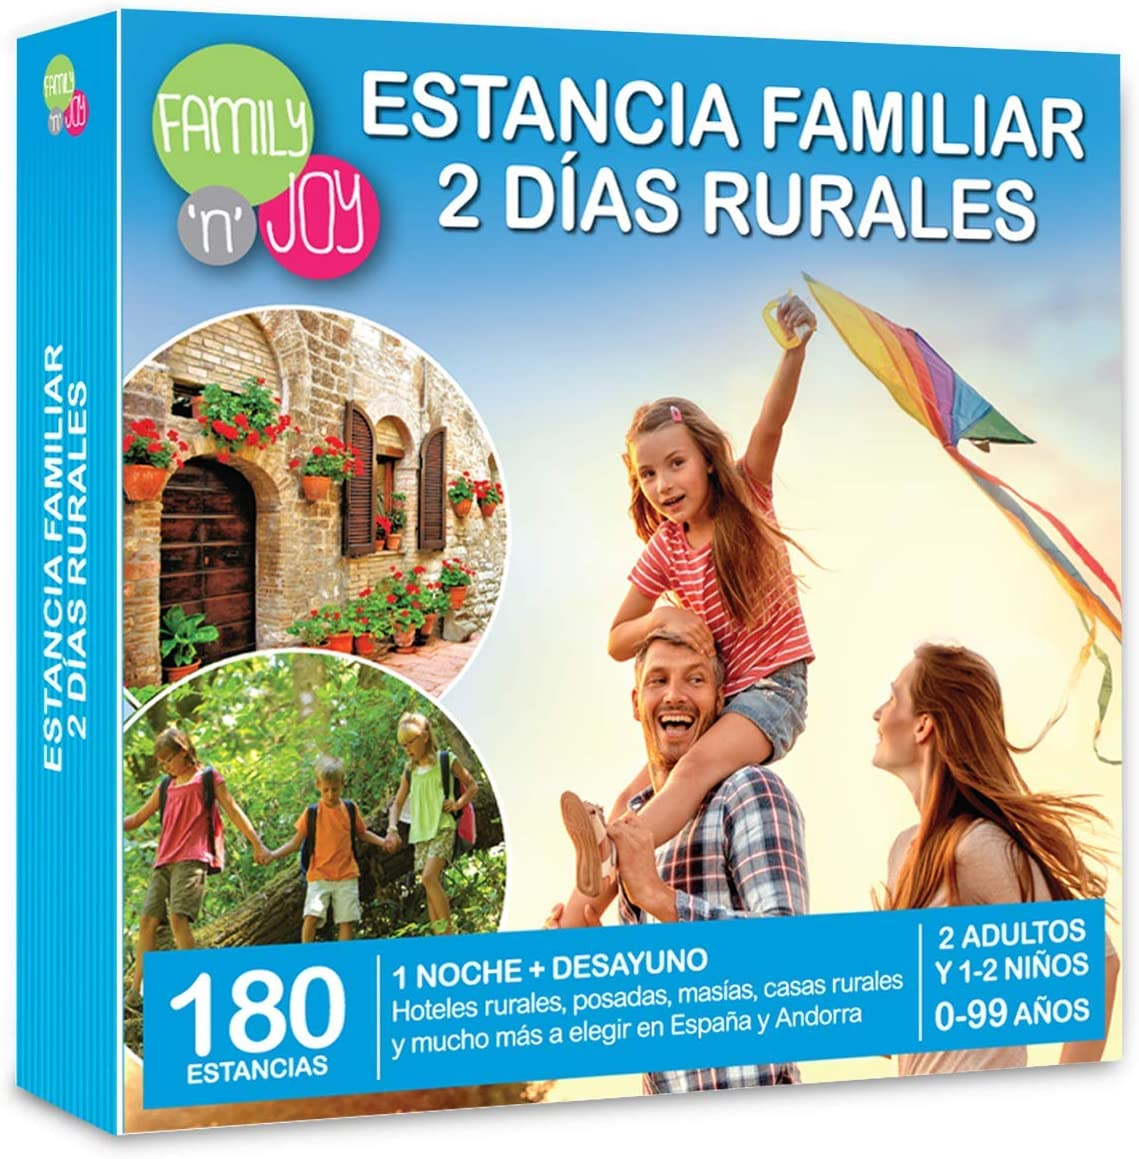 family n joy estancia familiar 2 dias rurales